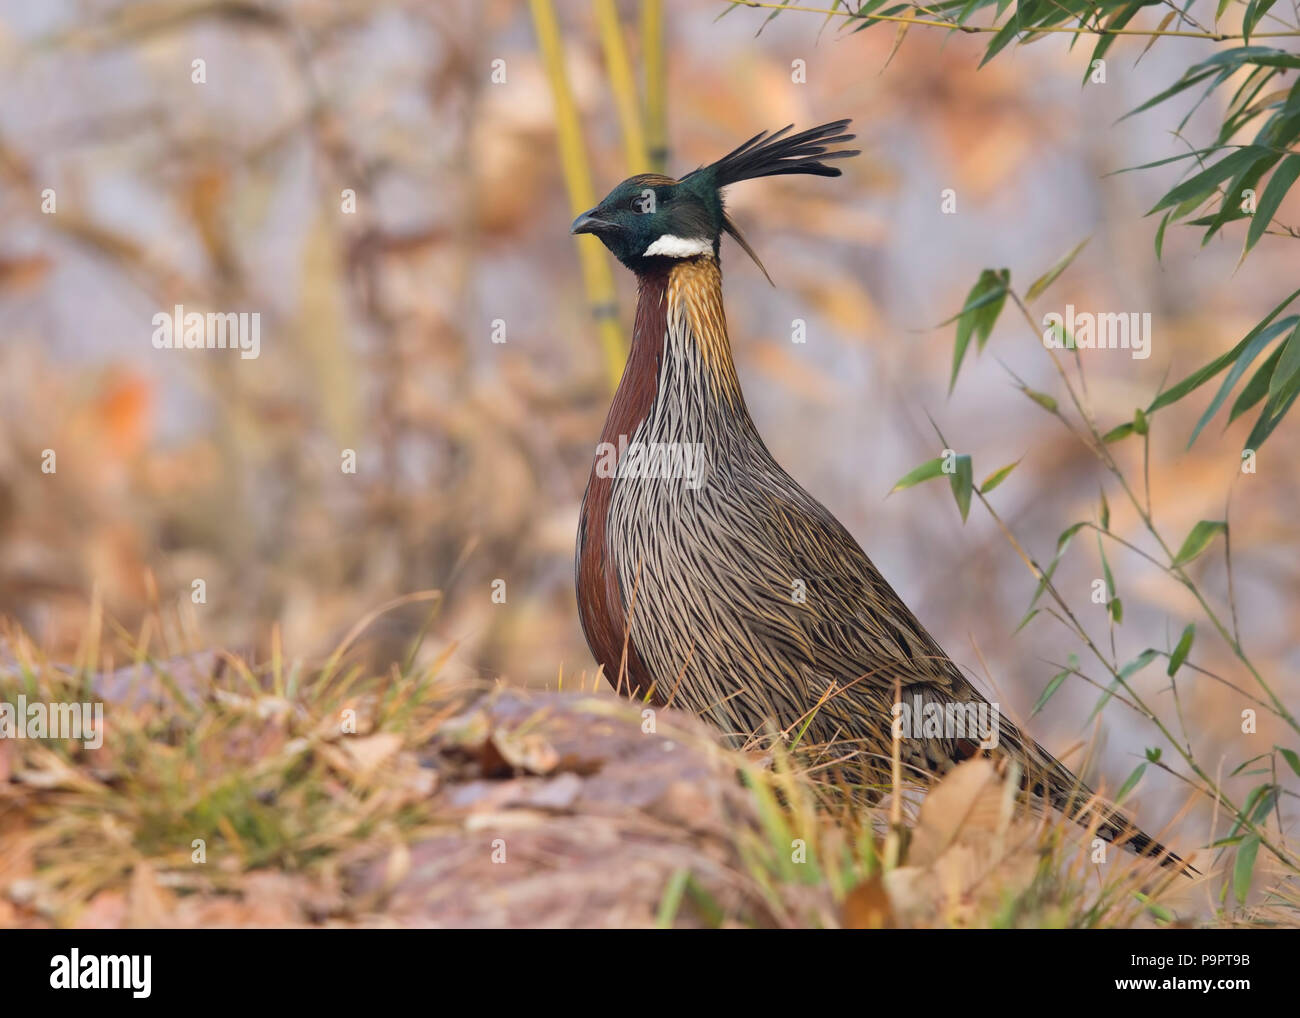 The Dweller of Steep Slopes , enigma on the mountains - Koklass Pheasant on a cold winter morning in Henan province of China. - Stock Image